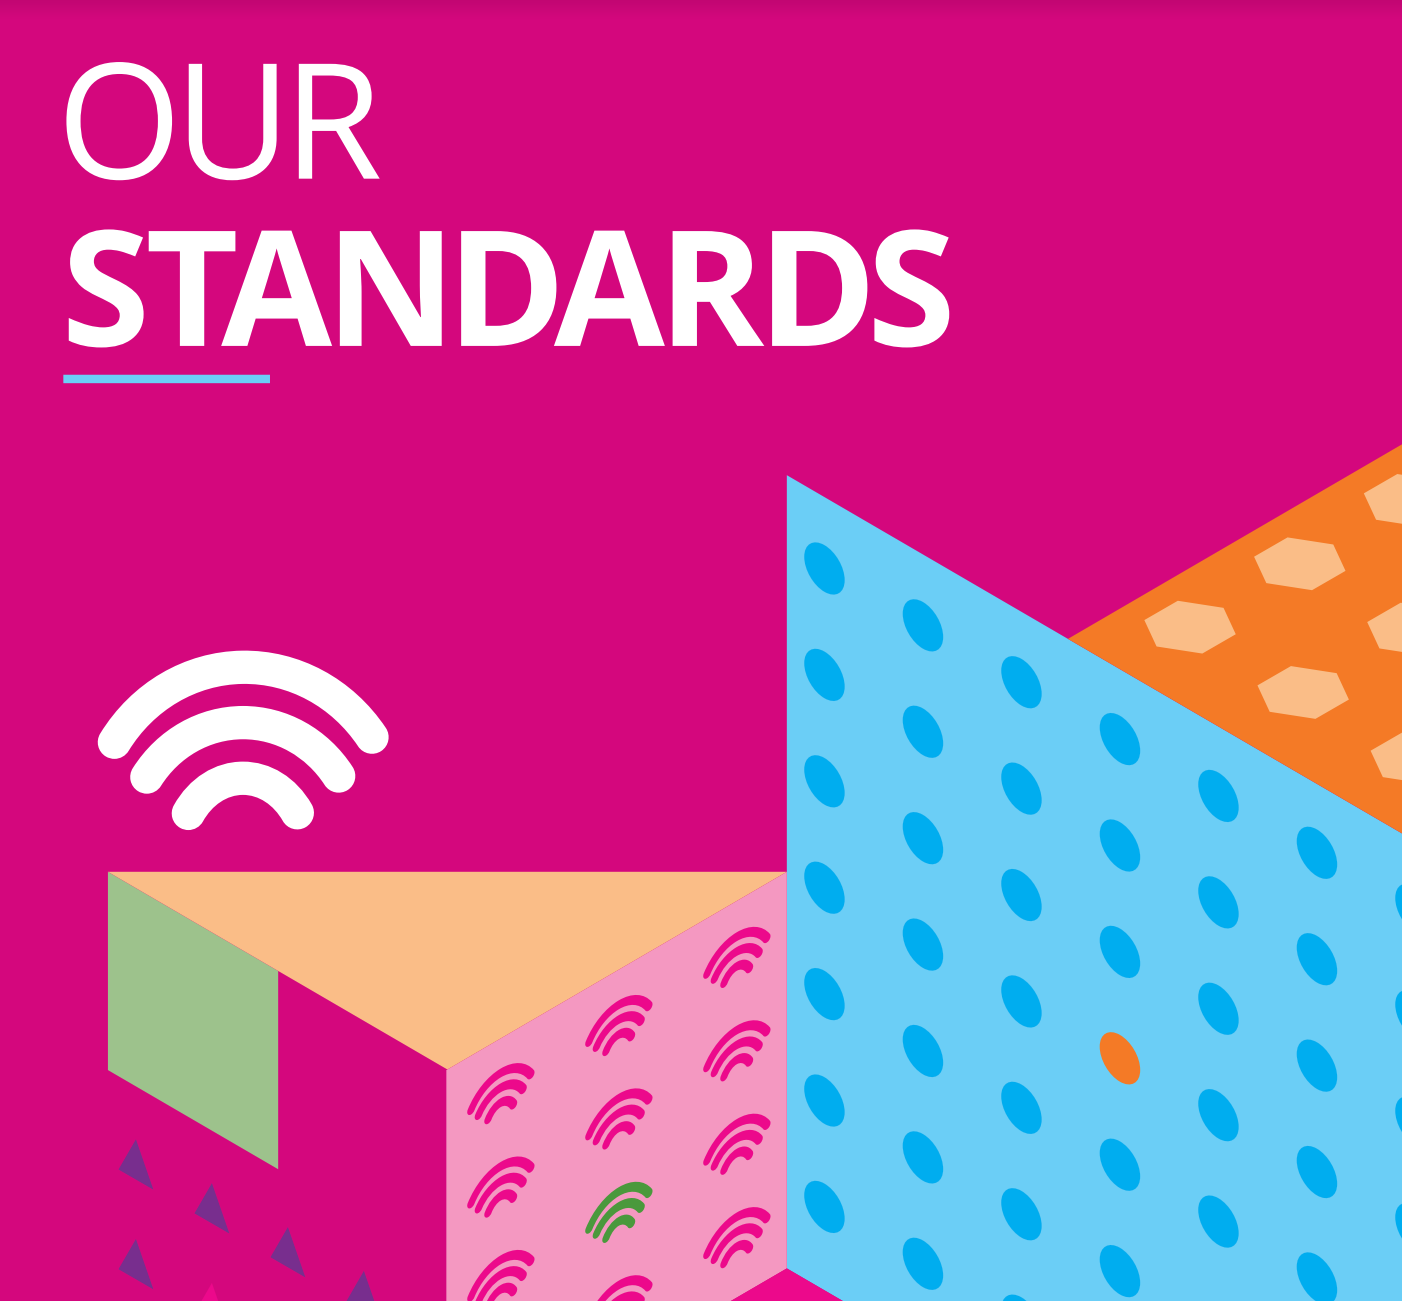 Extract from the front cover of  Our Standards , the staff handbook about values